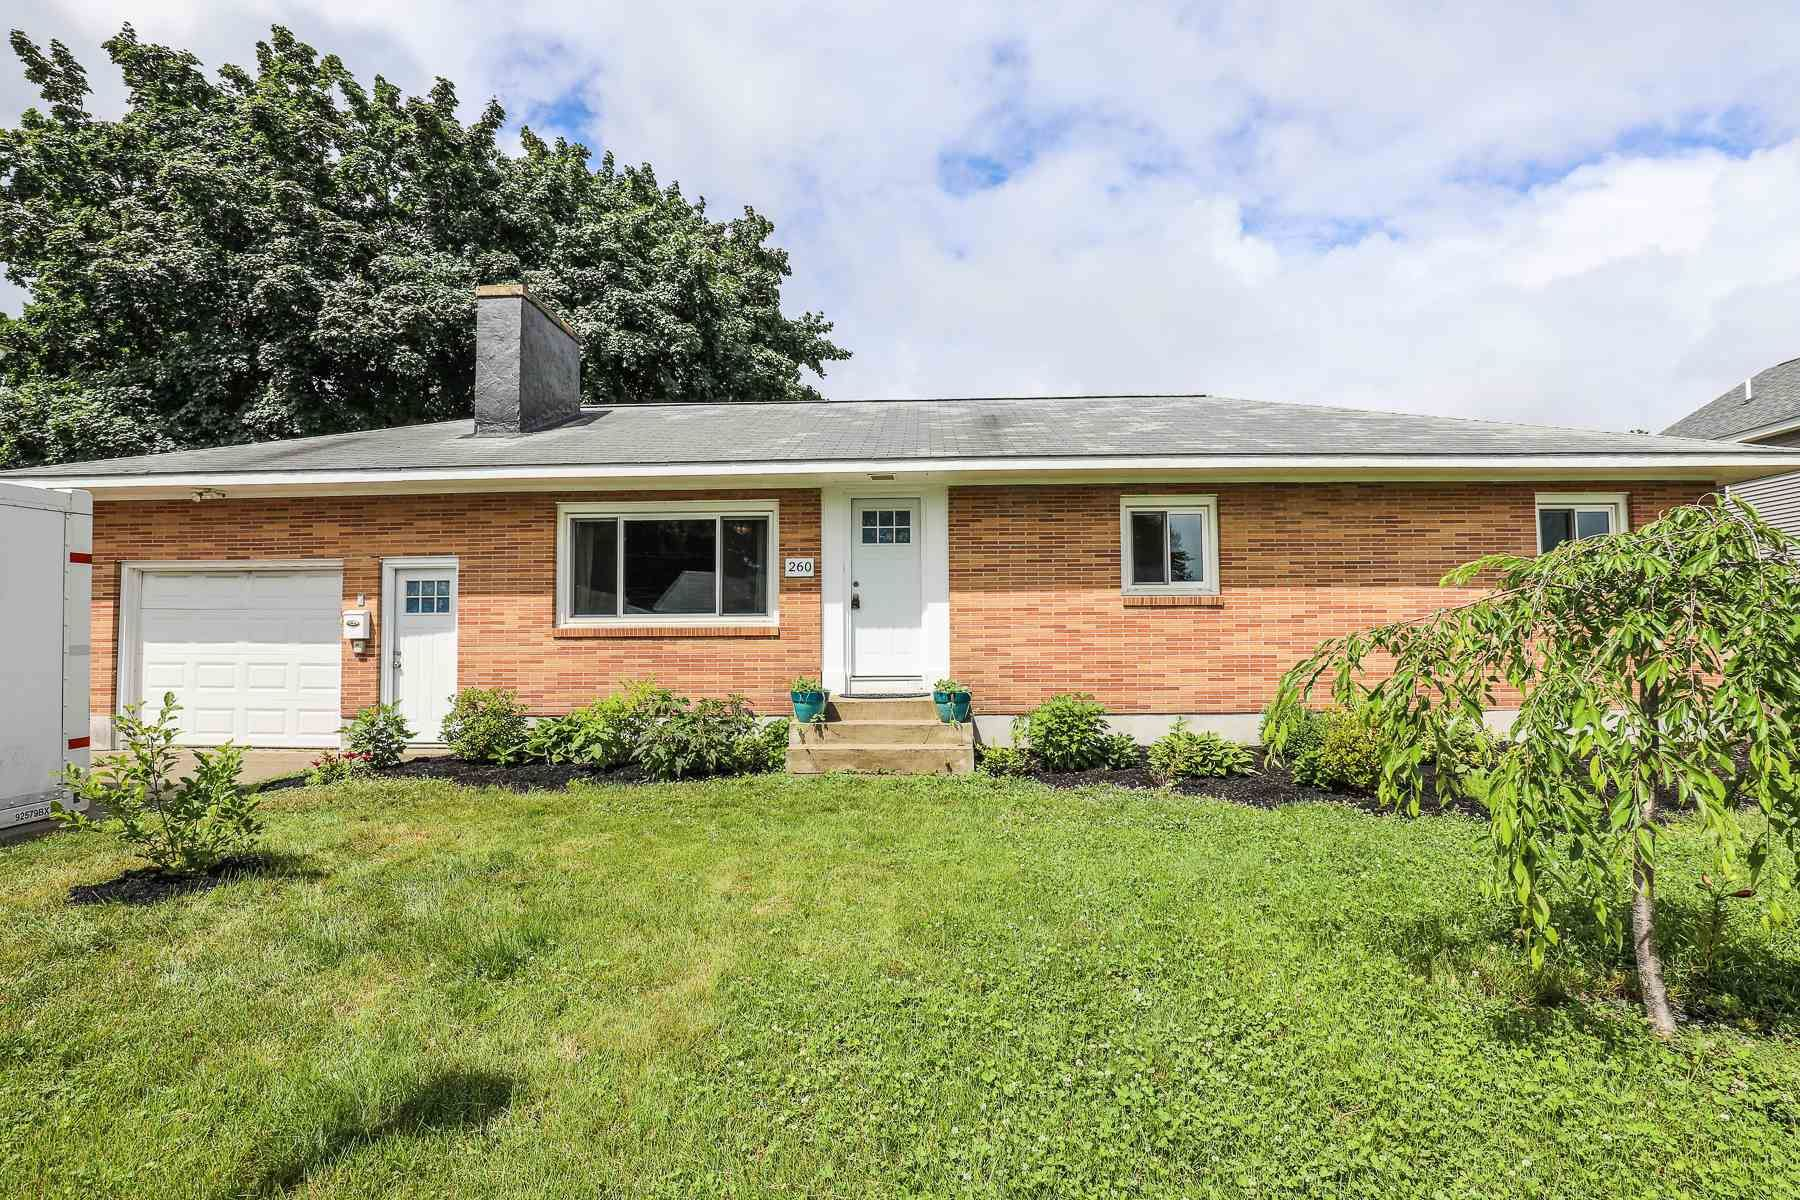 260 Youville Street, Manchester, NH 03102 - MLS#: 4816280